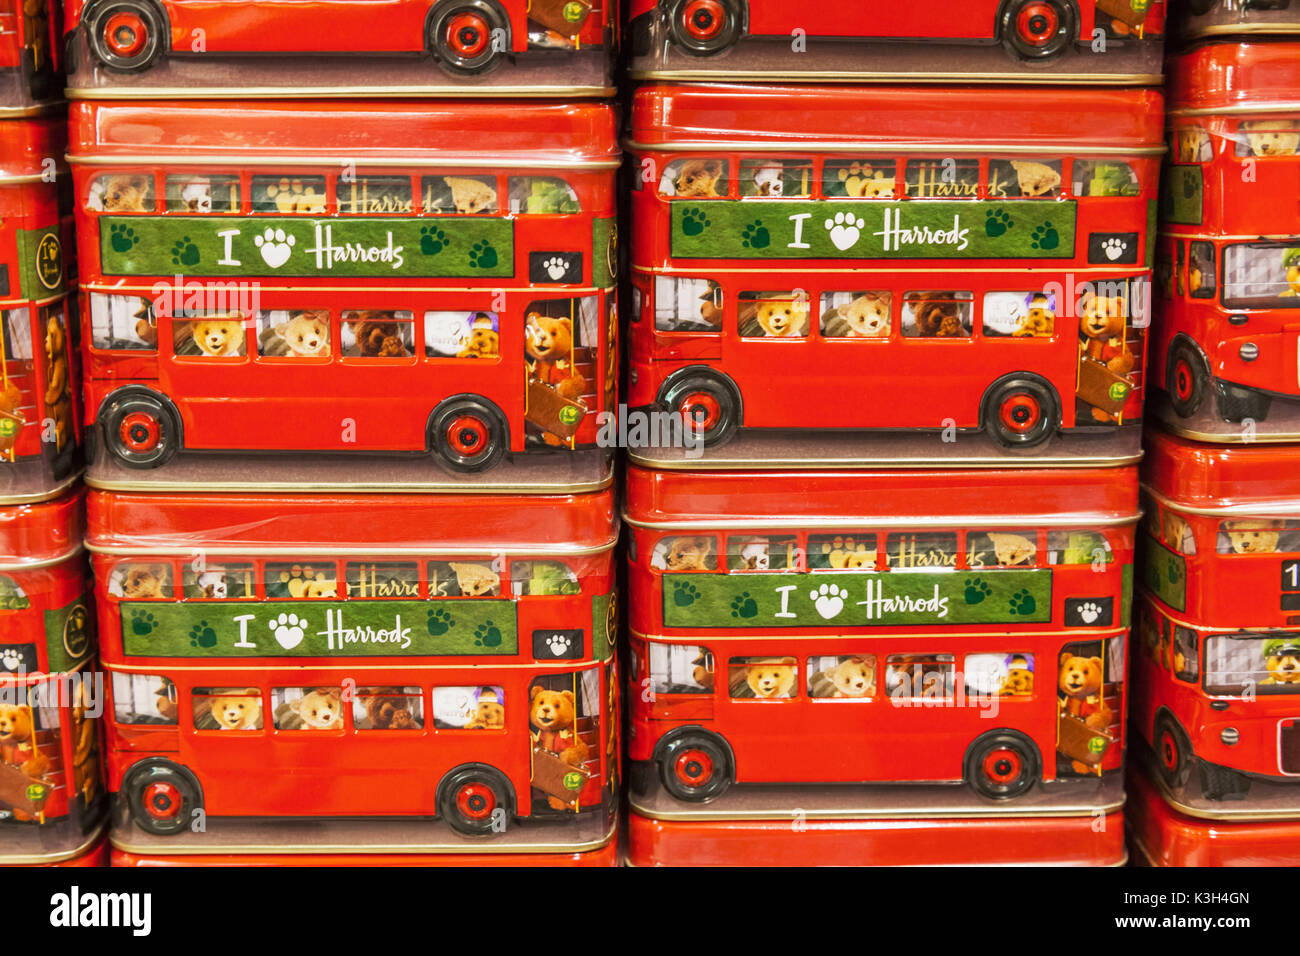 England, London, Knightsbridge, Harrods, Display of Harrods Biscuit Tins - Stock Image